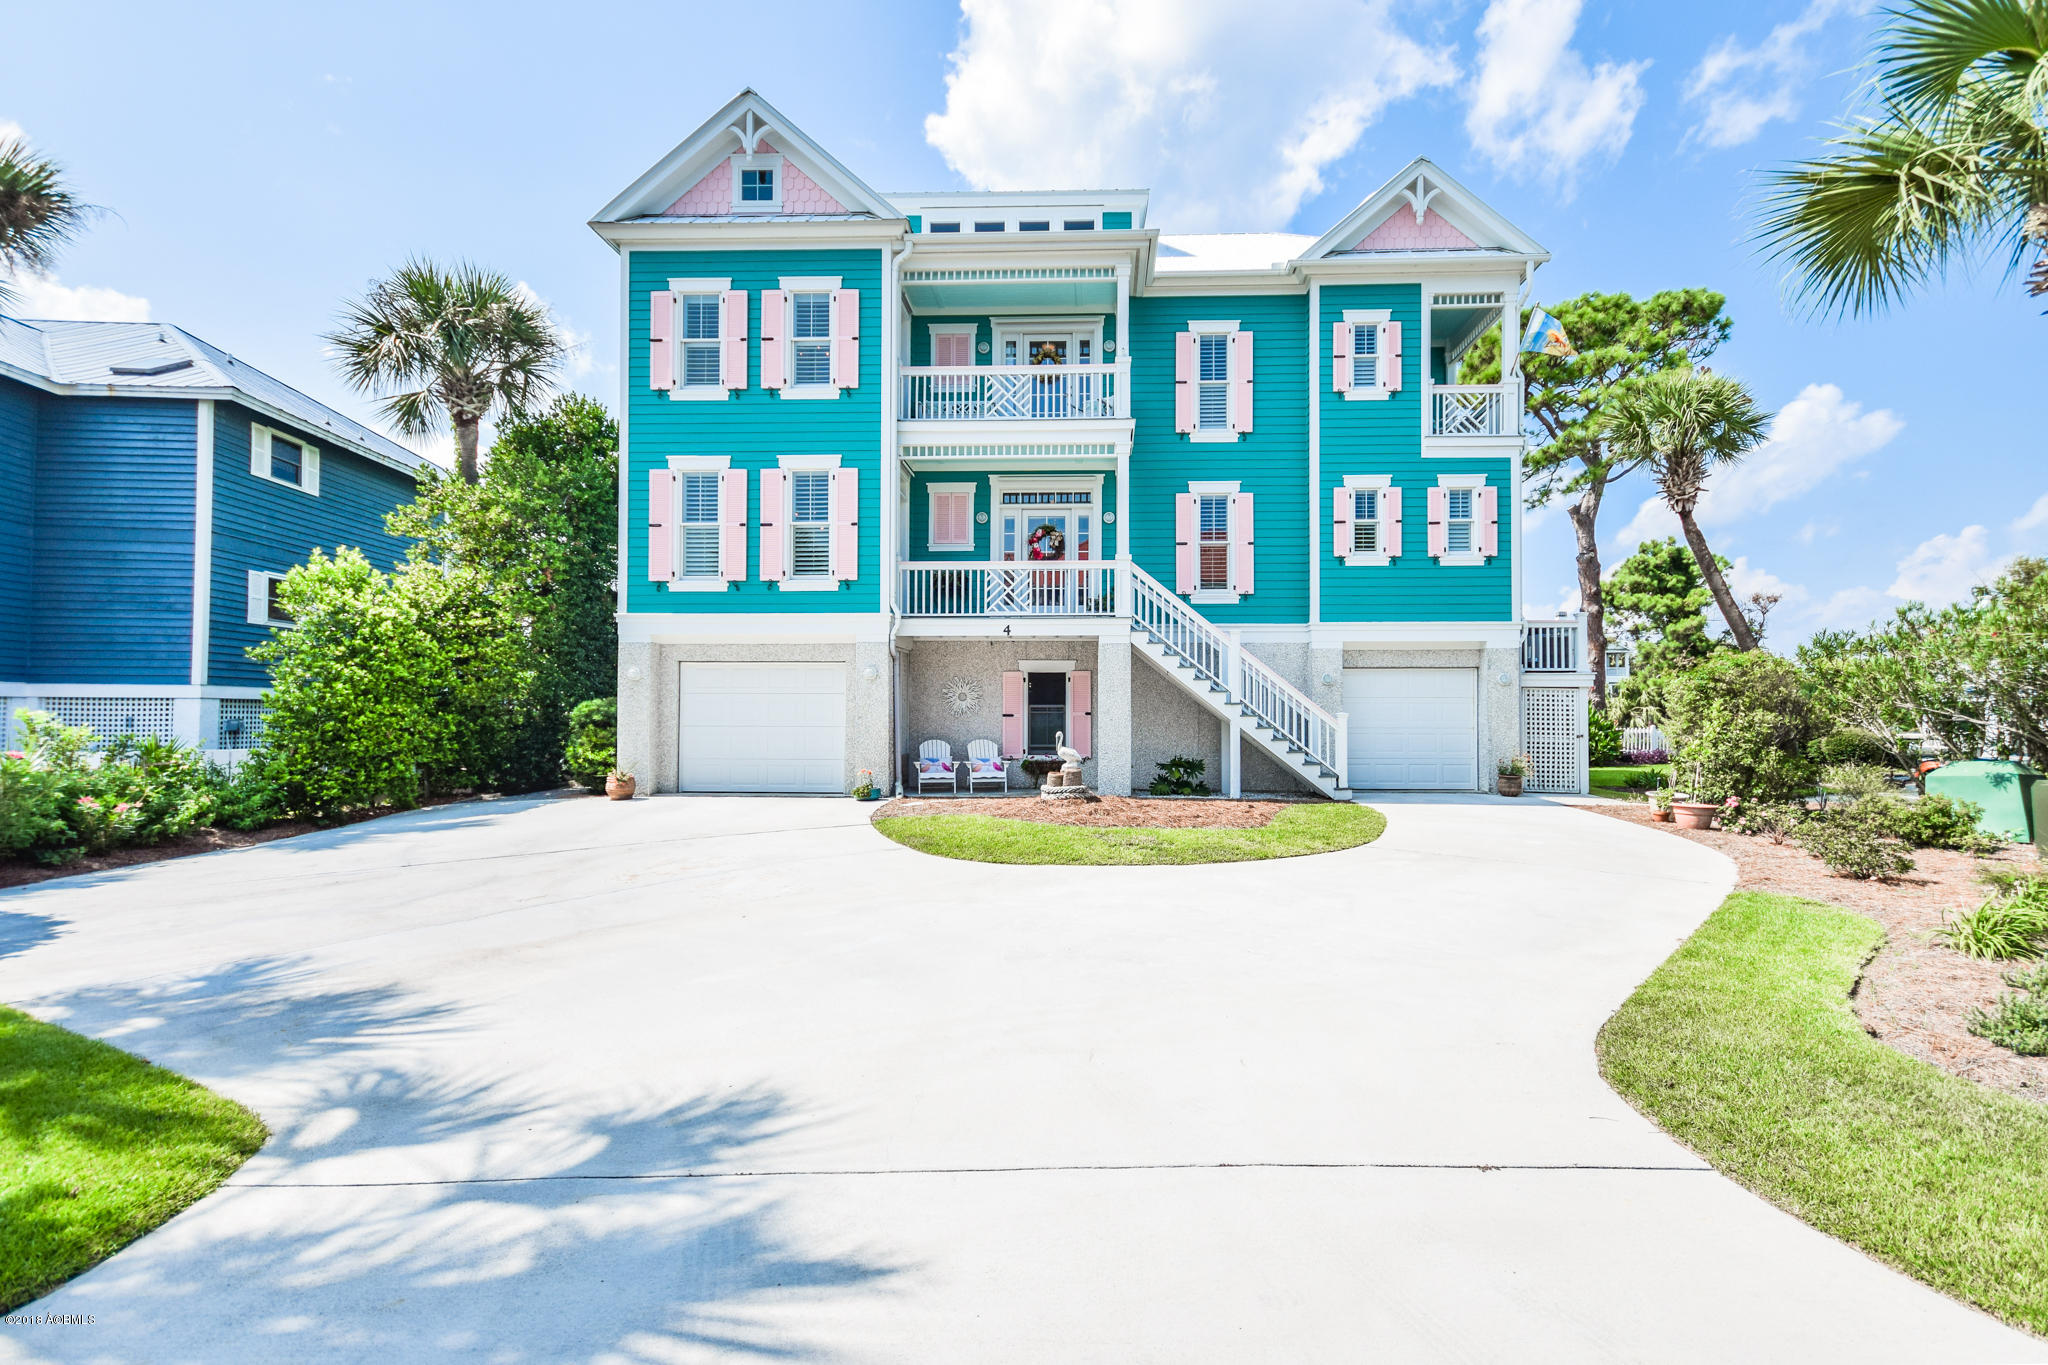 Photo of 4 Mickeys Alley, Harbor Island, SC 29920